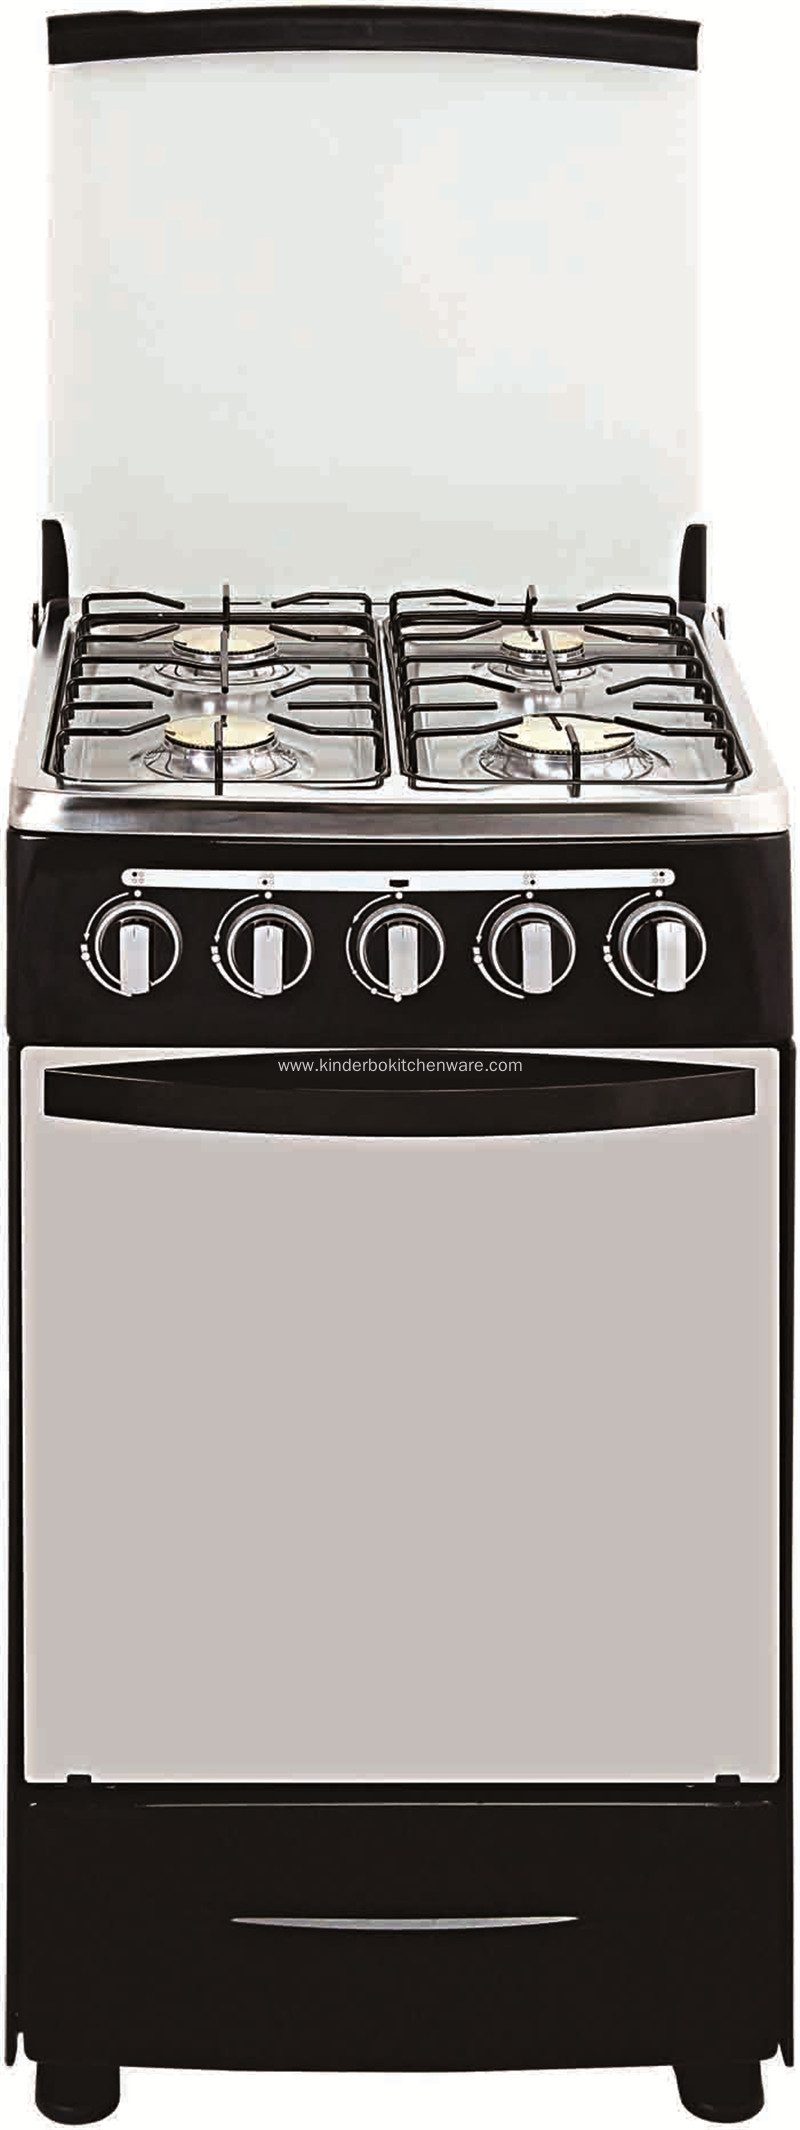 S/S Gas Cooking Range European 6 Burner Gas Stove with Oven